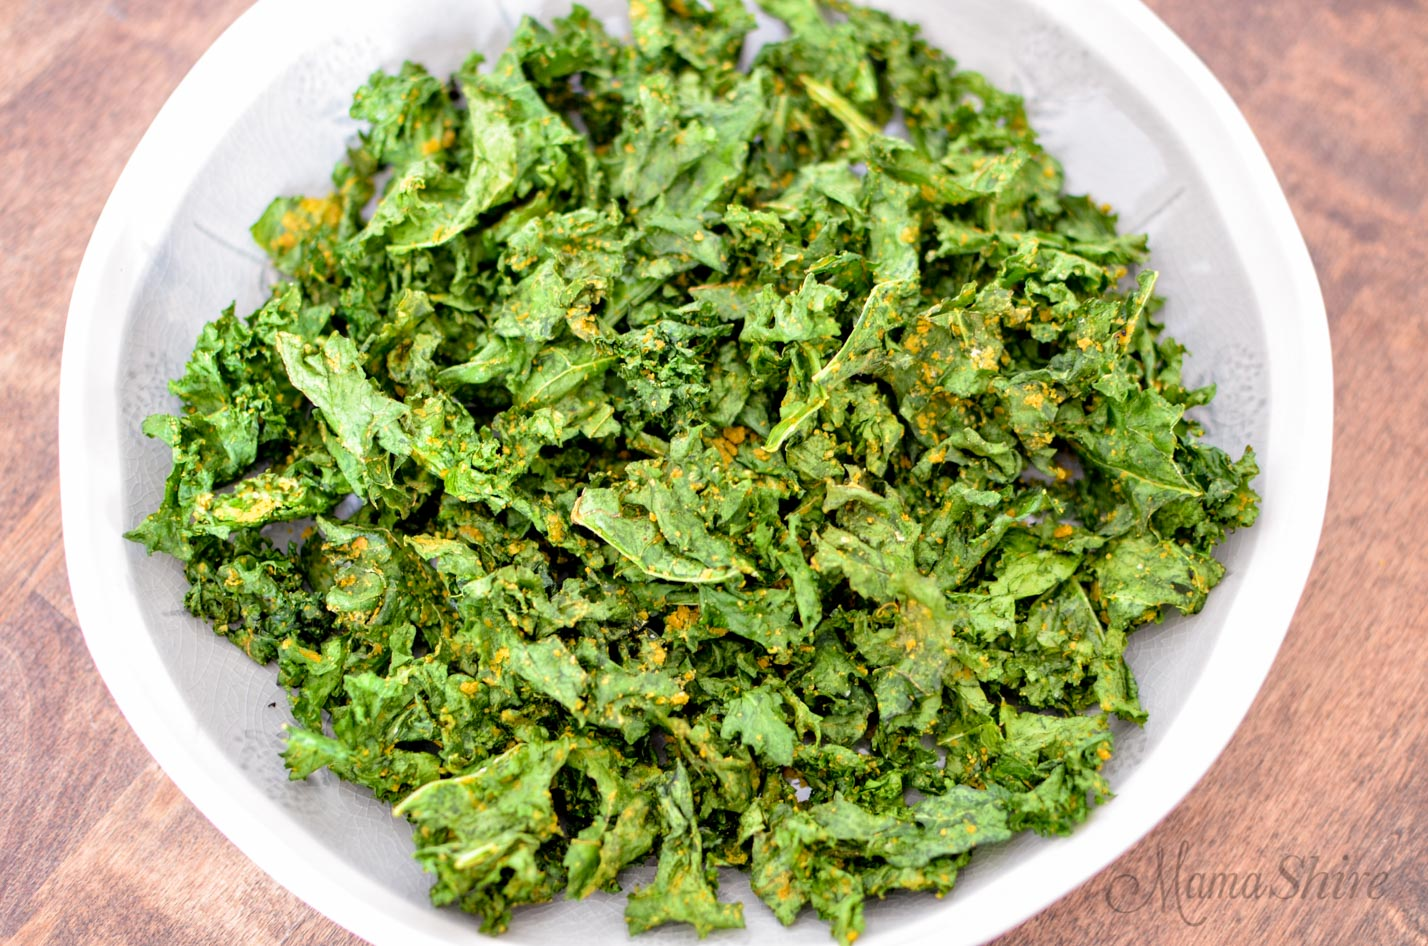 Air-Fried kale chips in a bowl.